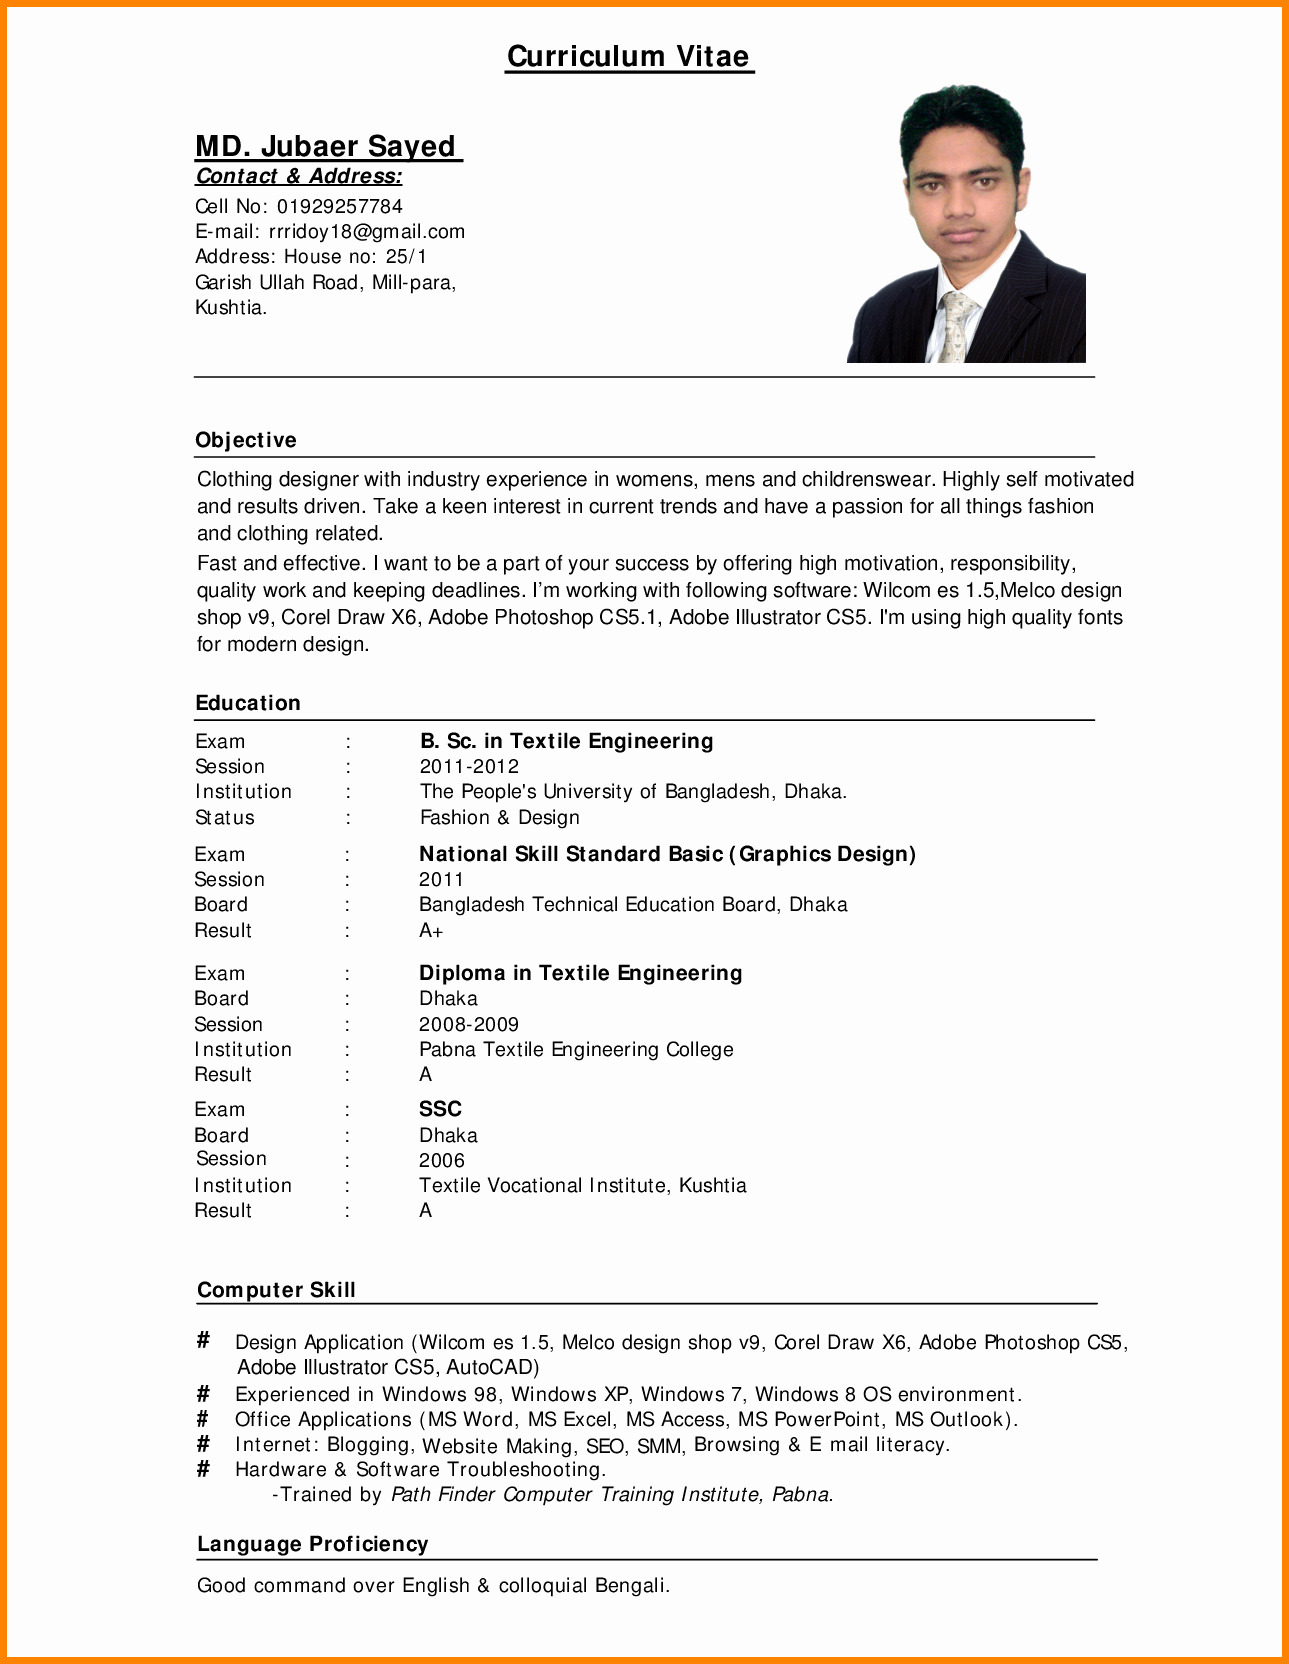 Professional Curriculum Vitae Template Download Awesome Standard Cv format Bangladesh Professional Resumes Sample